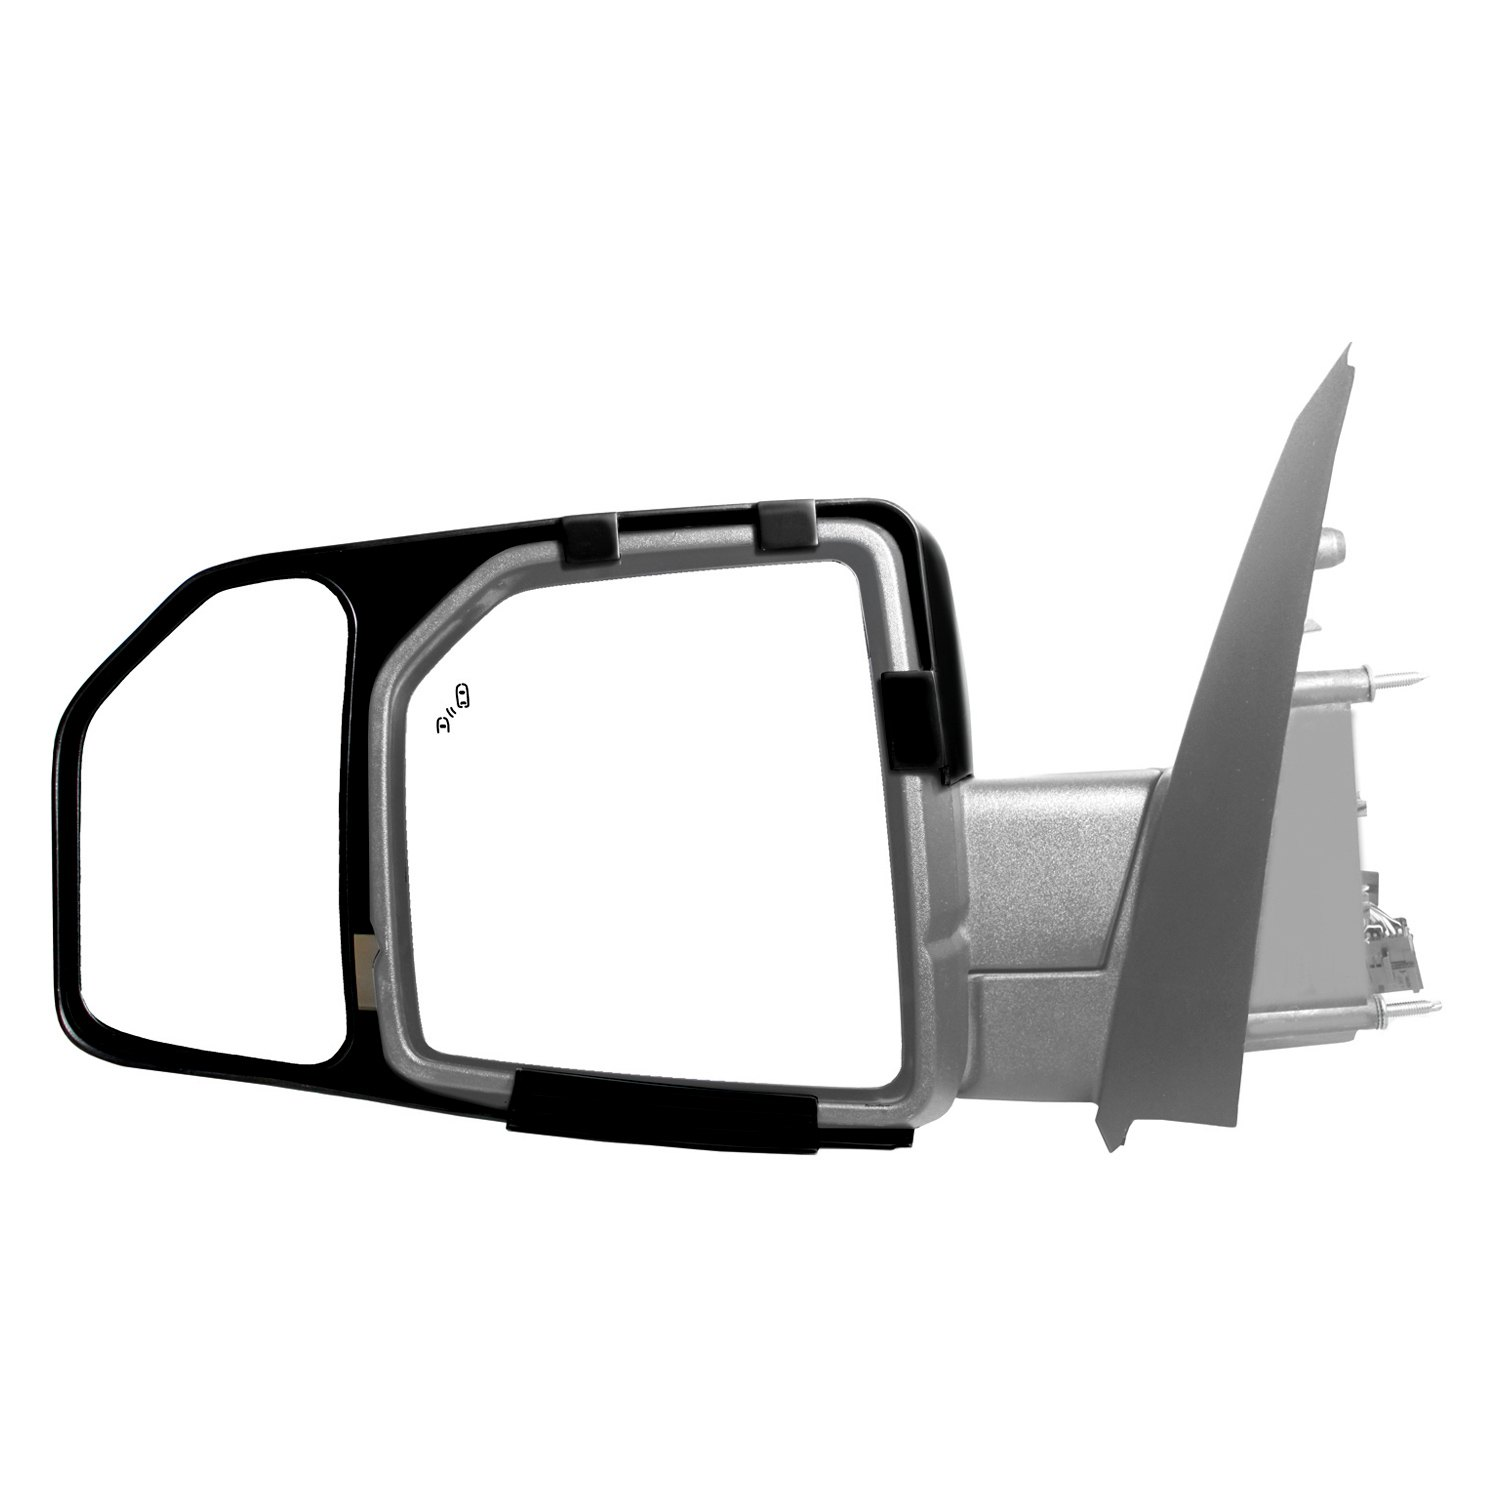 K source 81850 driver and passenger side towing mirrors for Mirror source